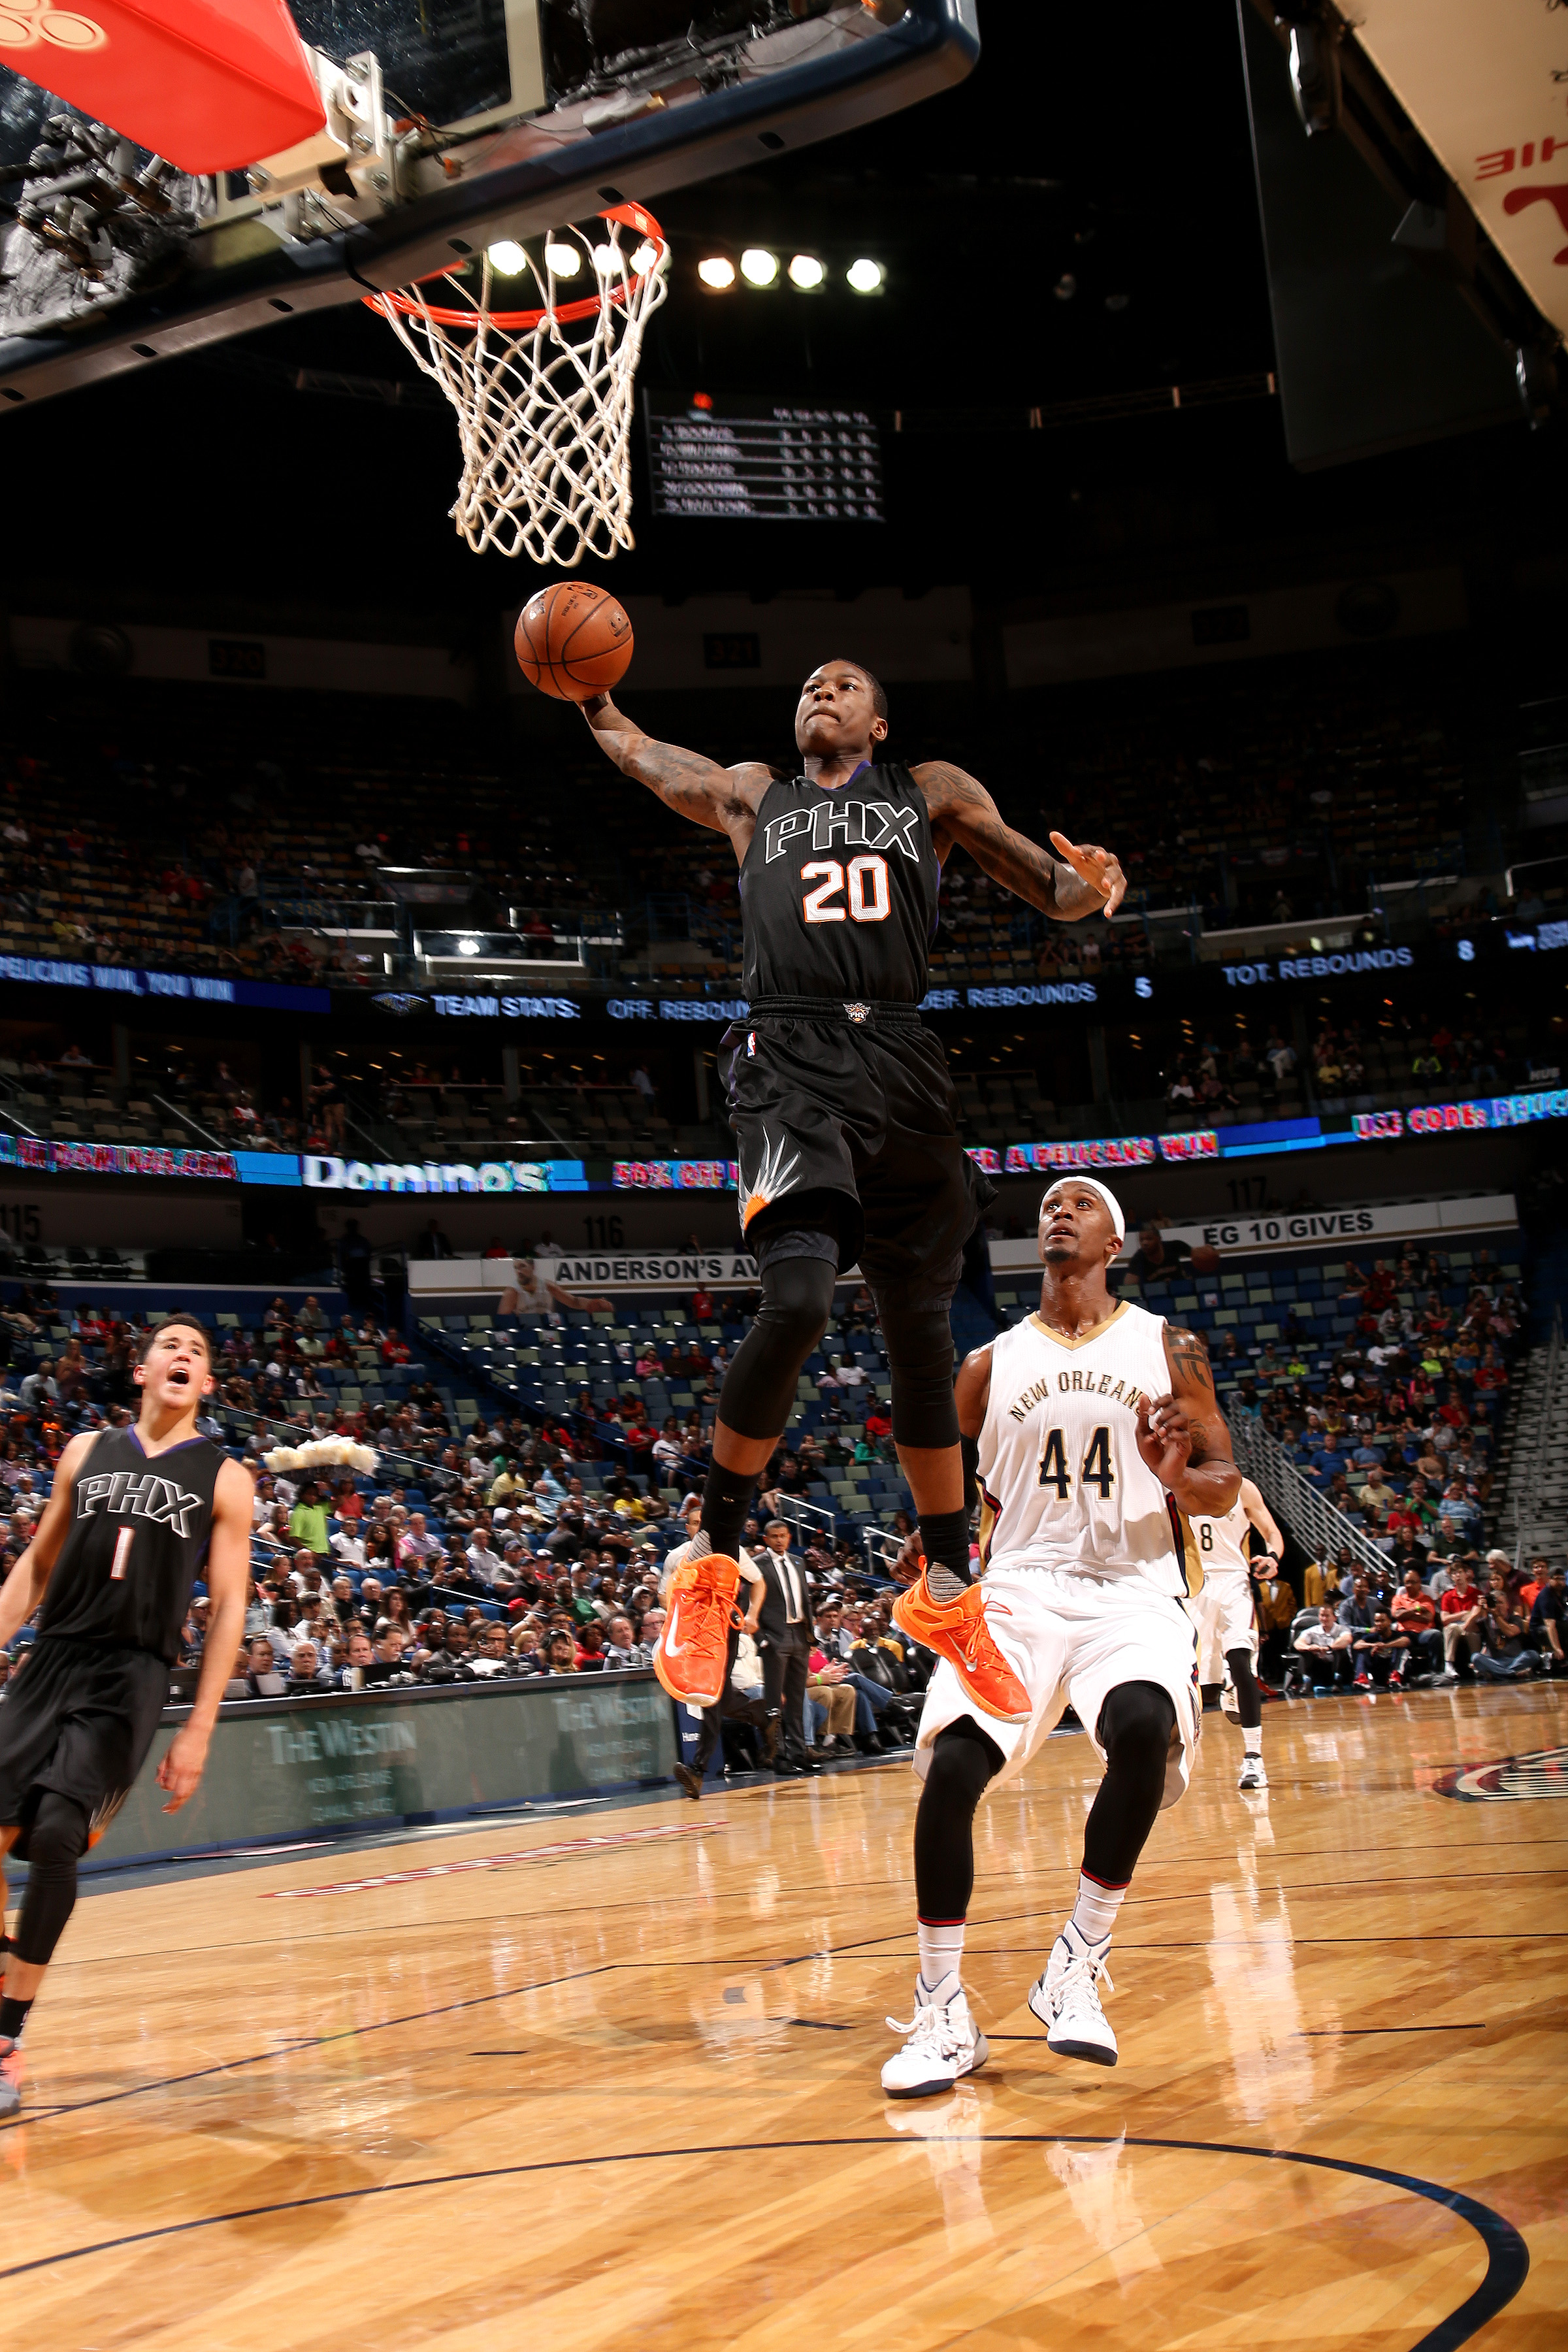 NEW ORLEANS, LA - APRIL 9: Archie Goodwin #20 of the Phoenix Suns goes for a dunk during the game against the New Orleans Pelicans on April 9, 2016 at the Smoothie King Center in New Orleans, Louisiana. (Photo by Layne Murdoch Jr./NBAE via Getty Images)